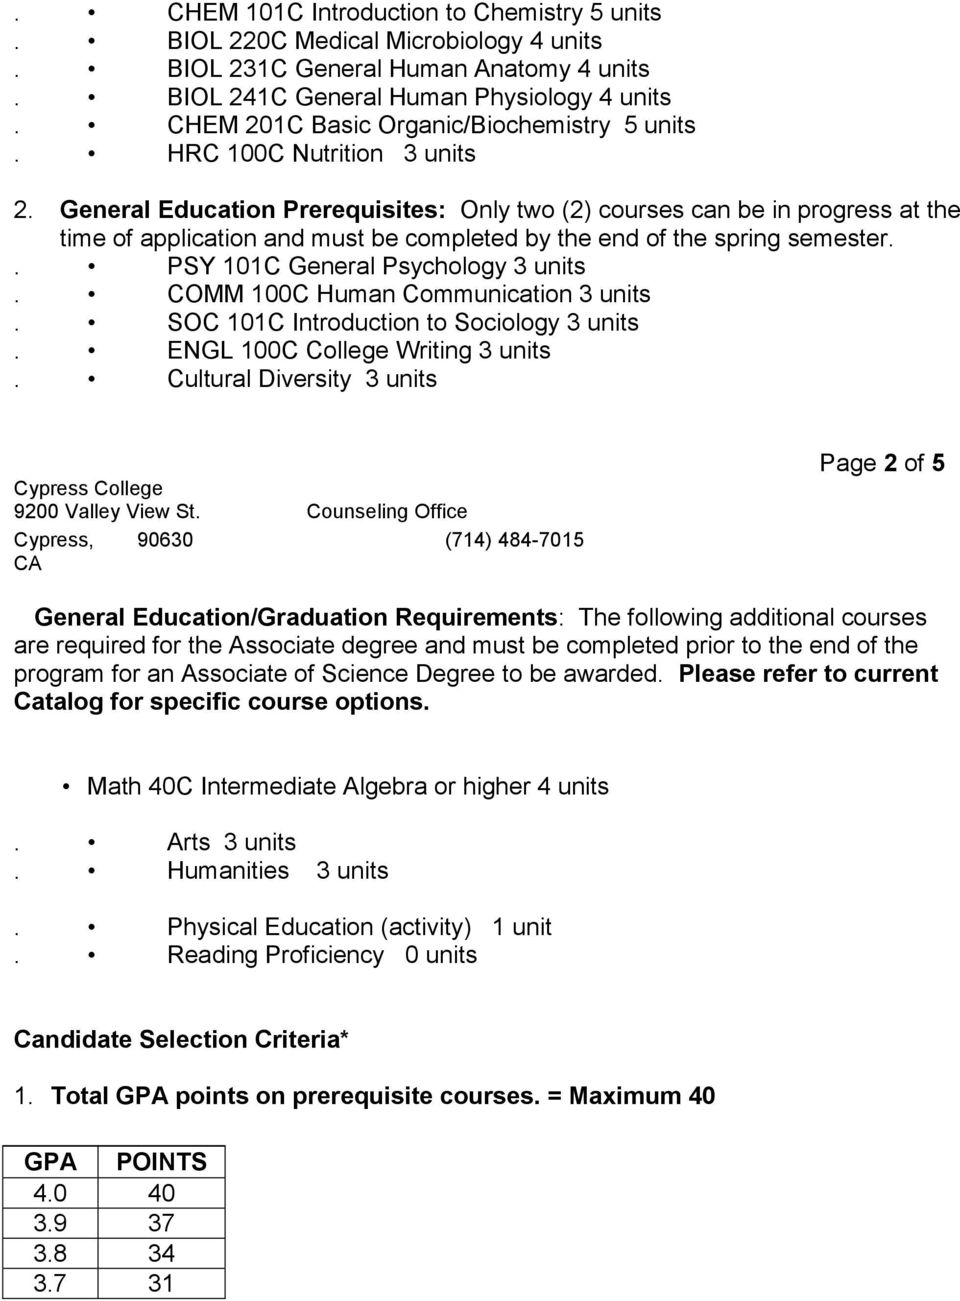 General Education Prerequisites: Only two (2) courses can be in progress at the time of application and must be completed by the end of the spring semester.. PSY 101C General Psychology 3 units.